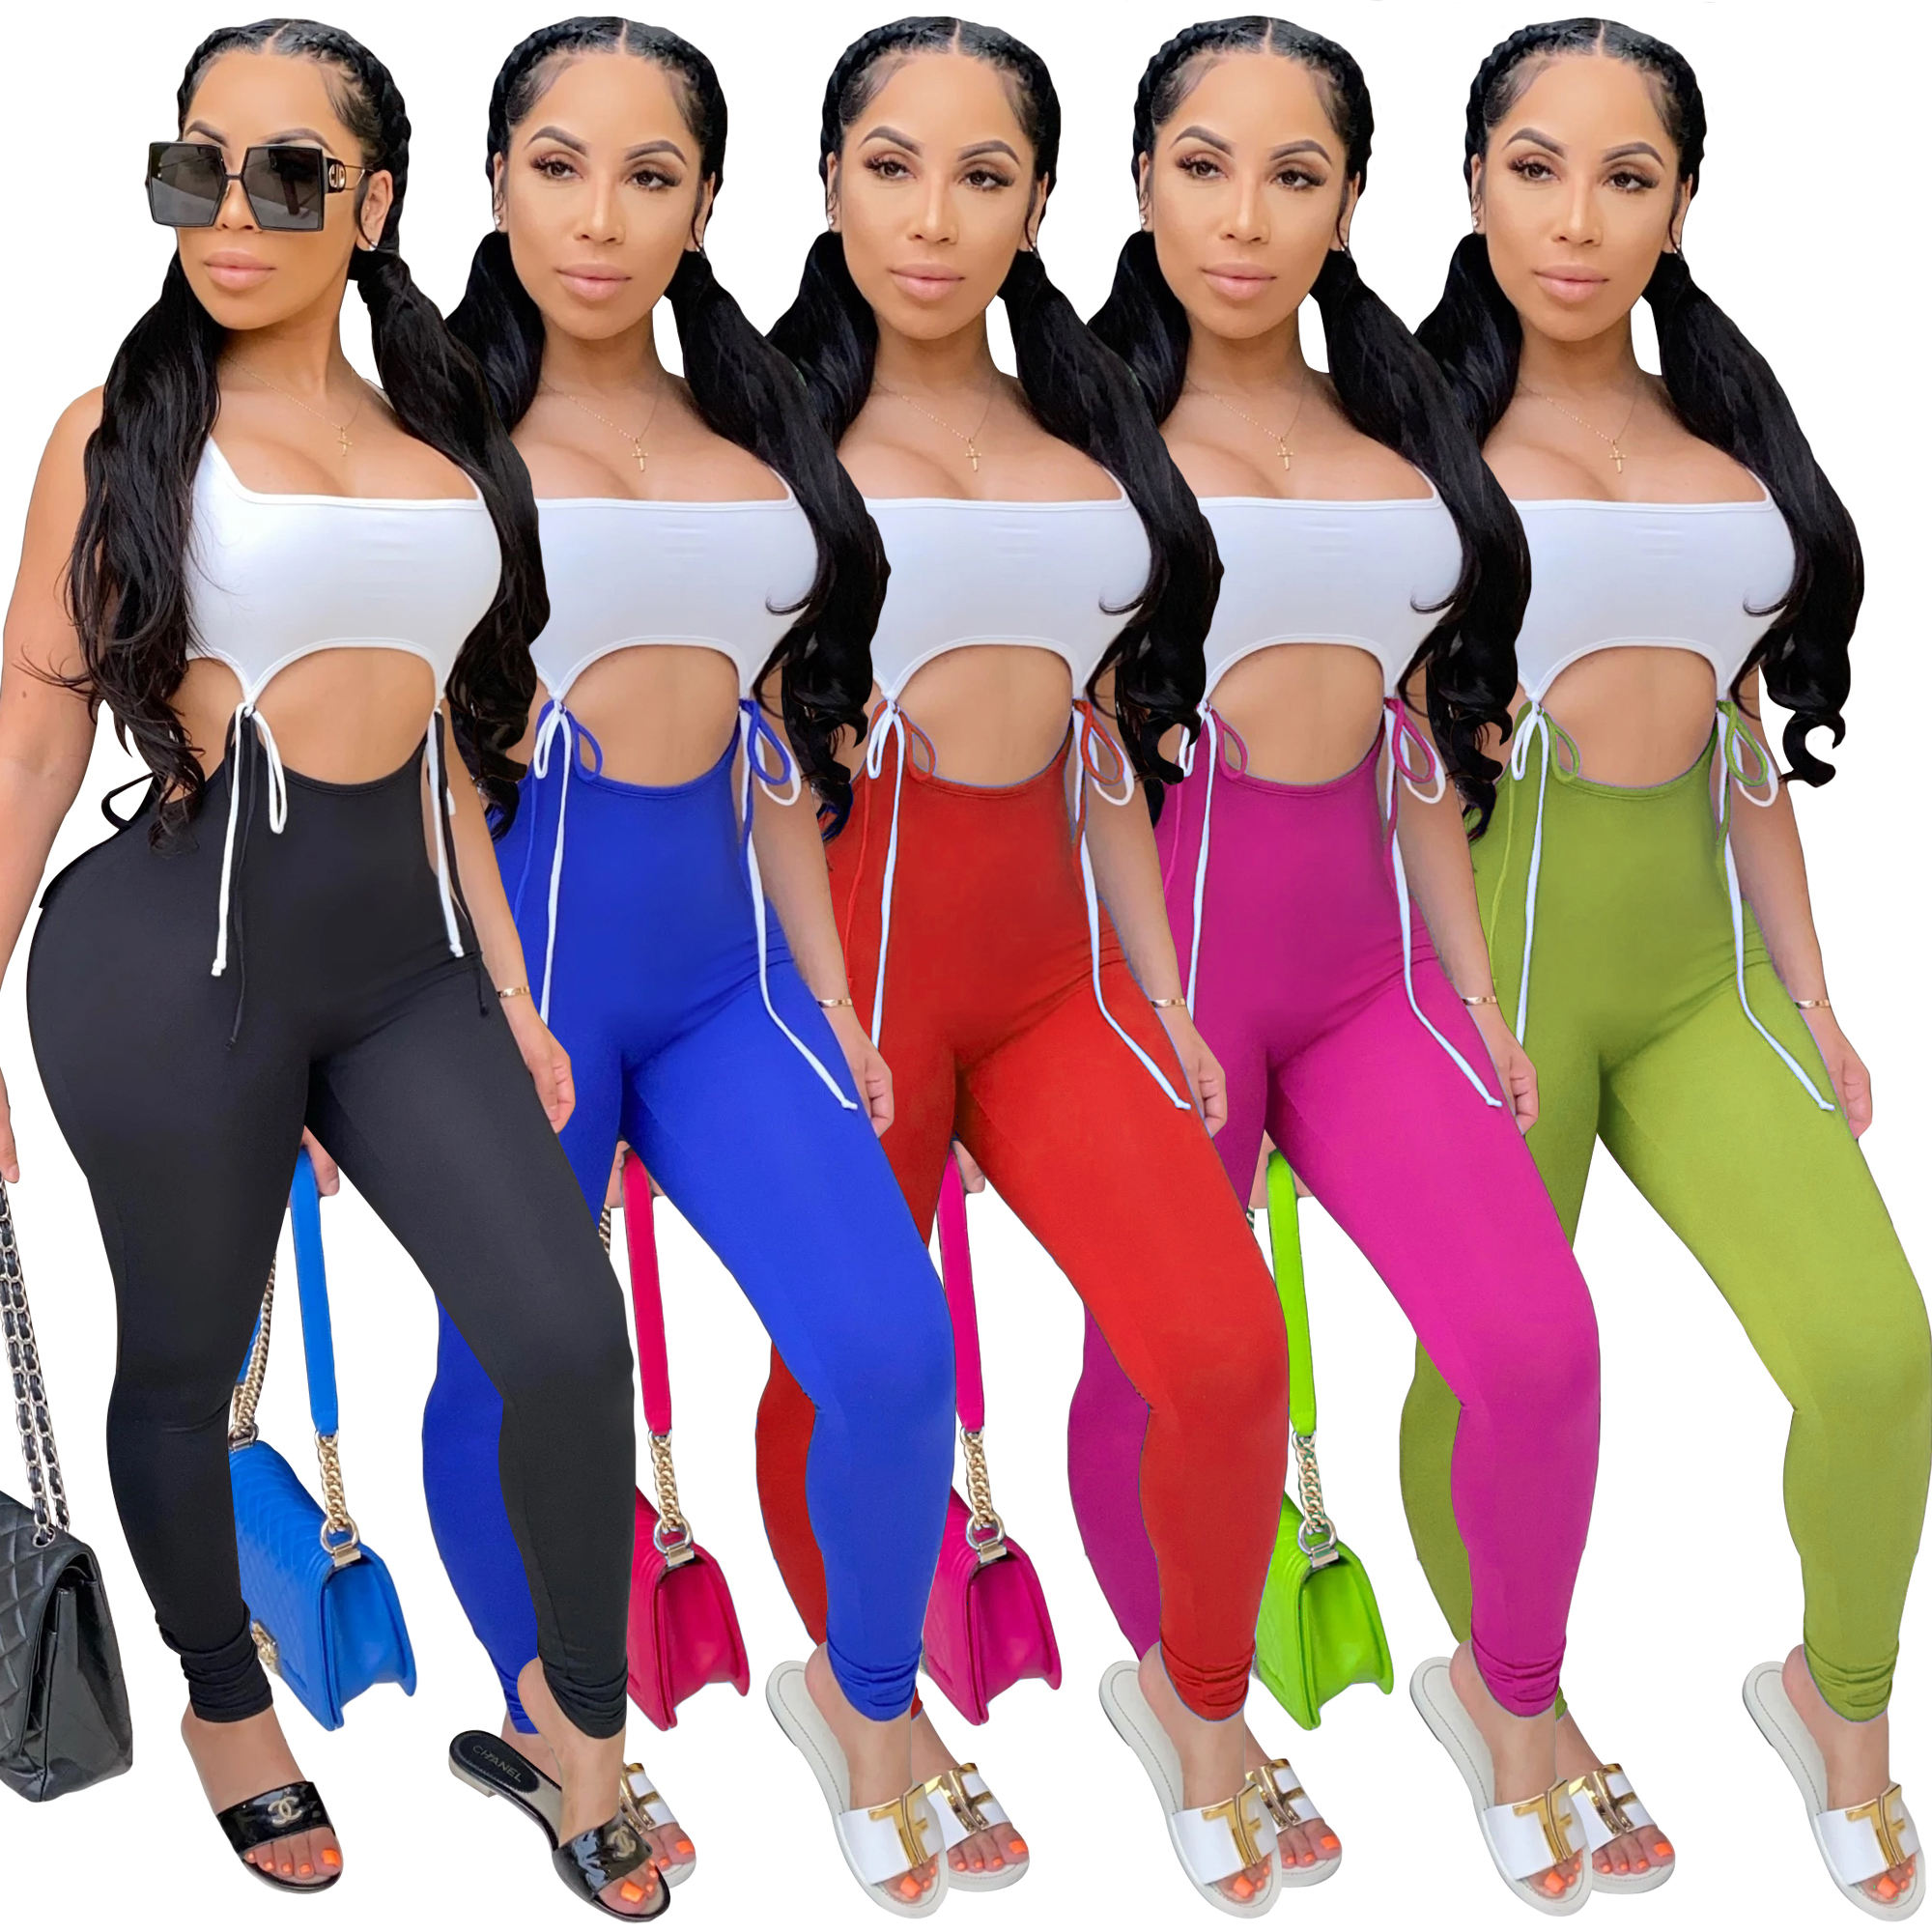 2020 New Fashion Womens Casual One Pieces Ladies Jumpsuits Lace Up Siamese Trousers Long Pants Clothing Summer